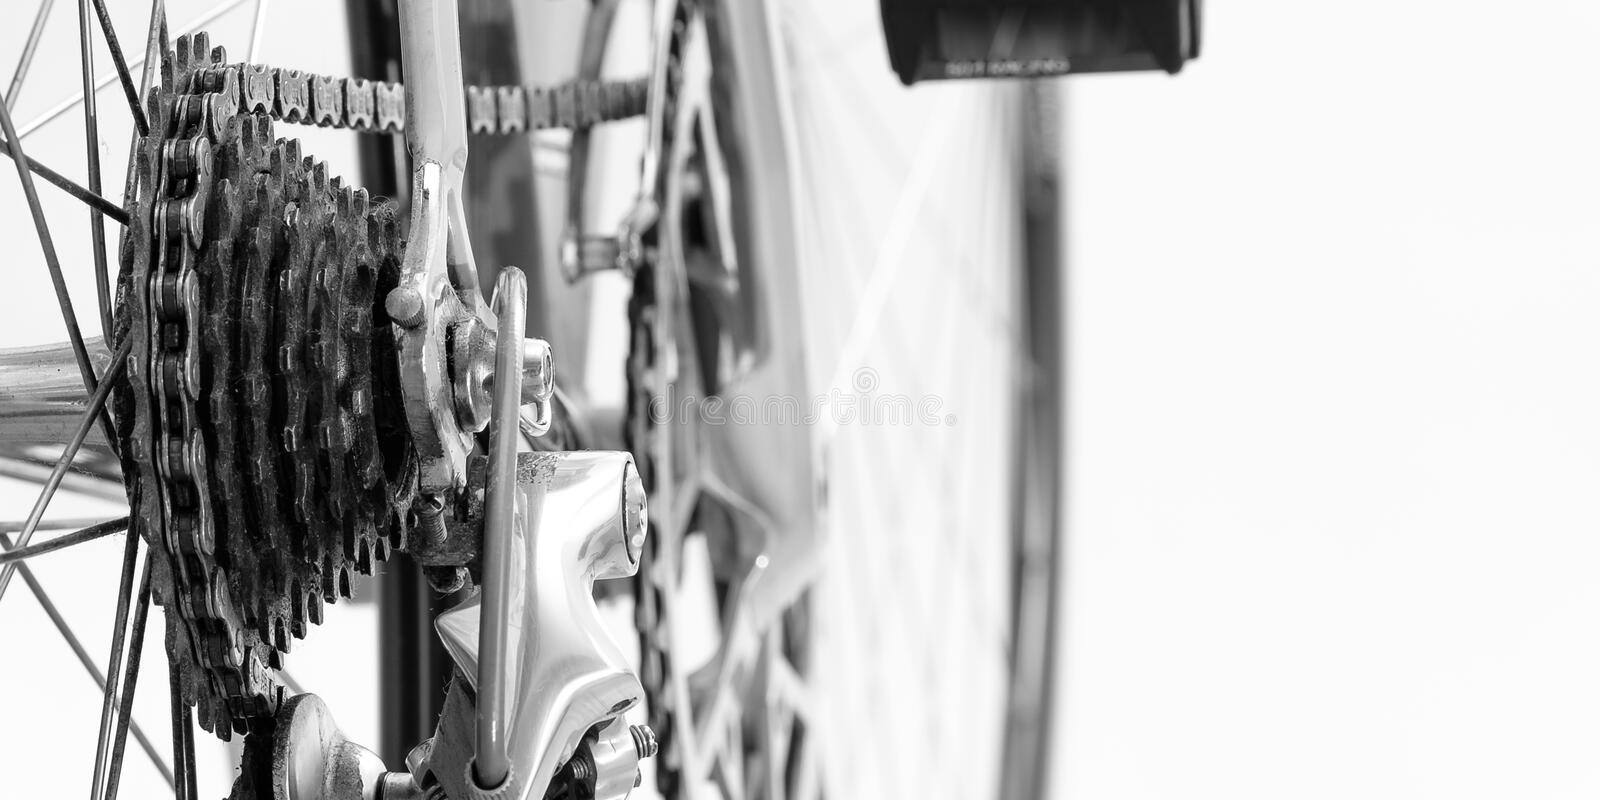 Bicycle chain and sprocket vintage royalty free stock image